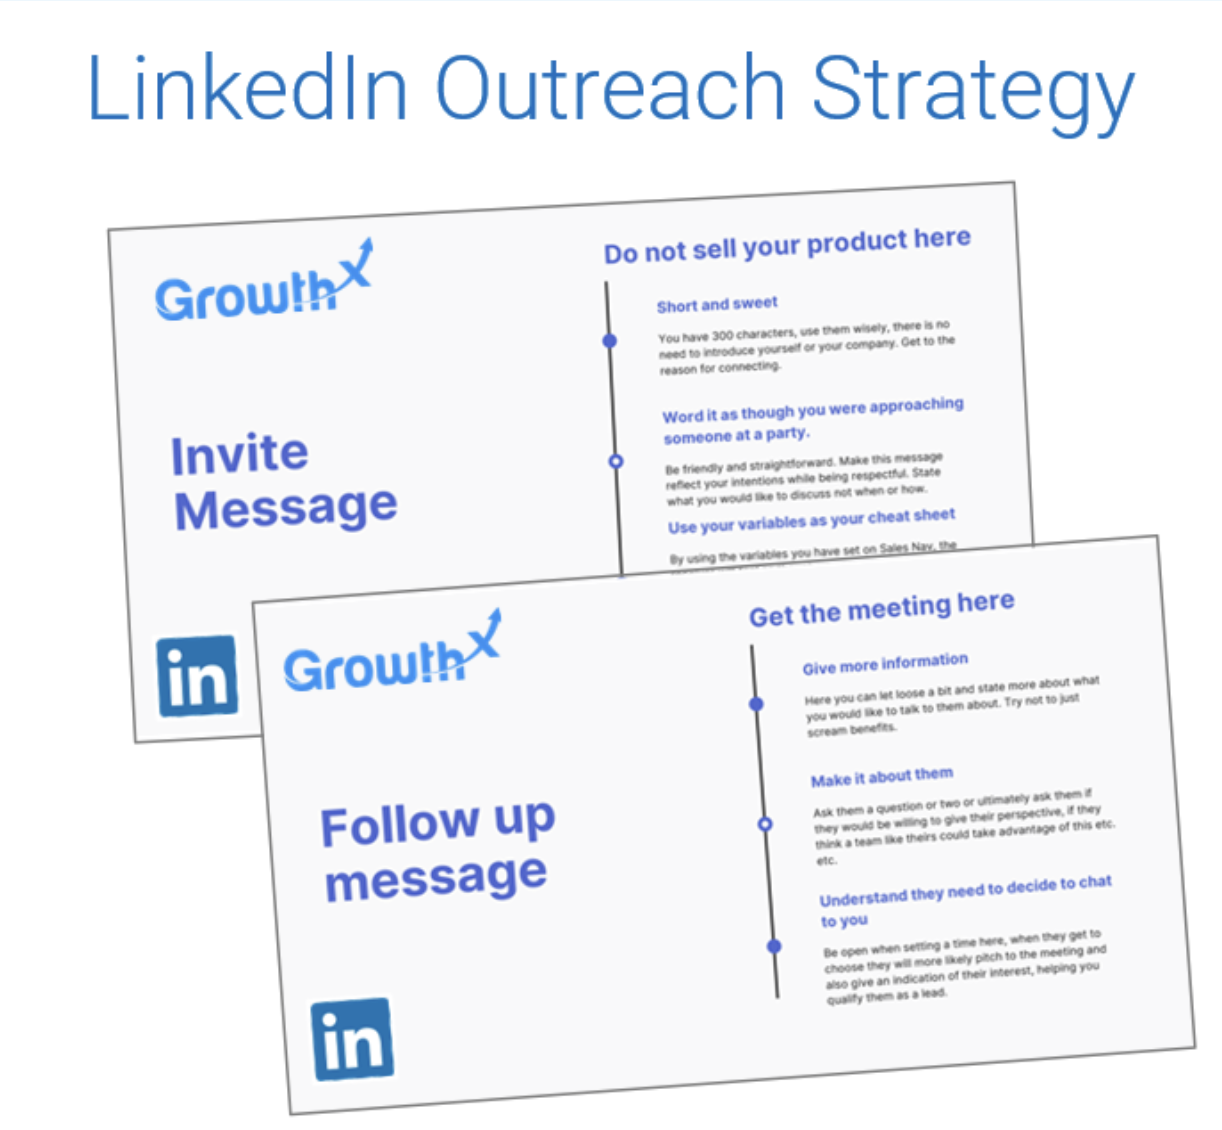 How To Develop An Effective LinkedIn Outreach Strategy